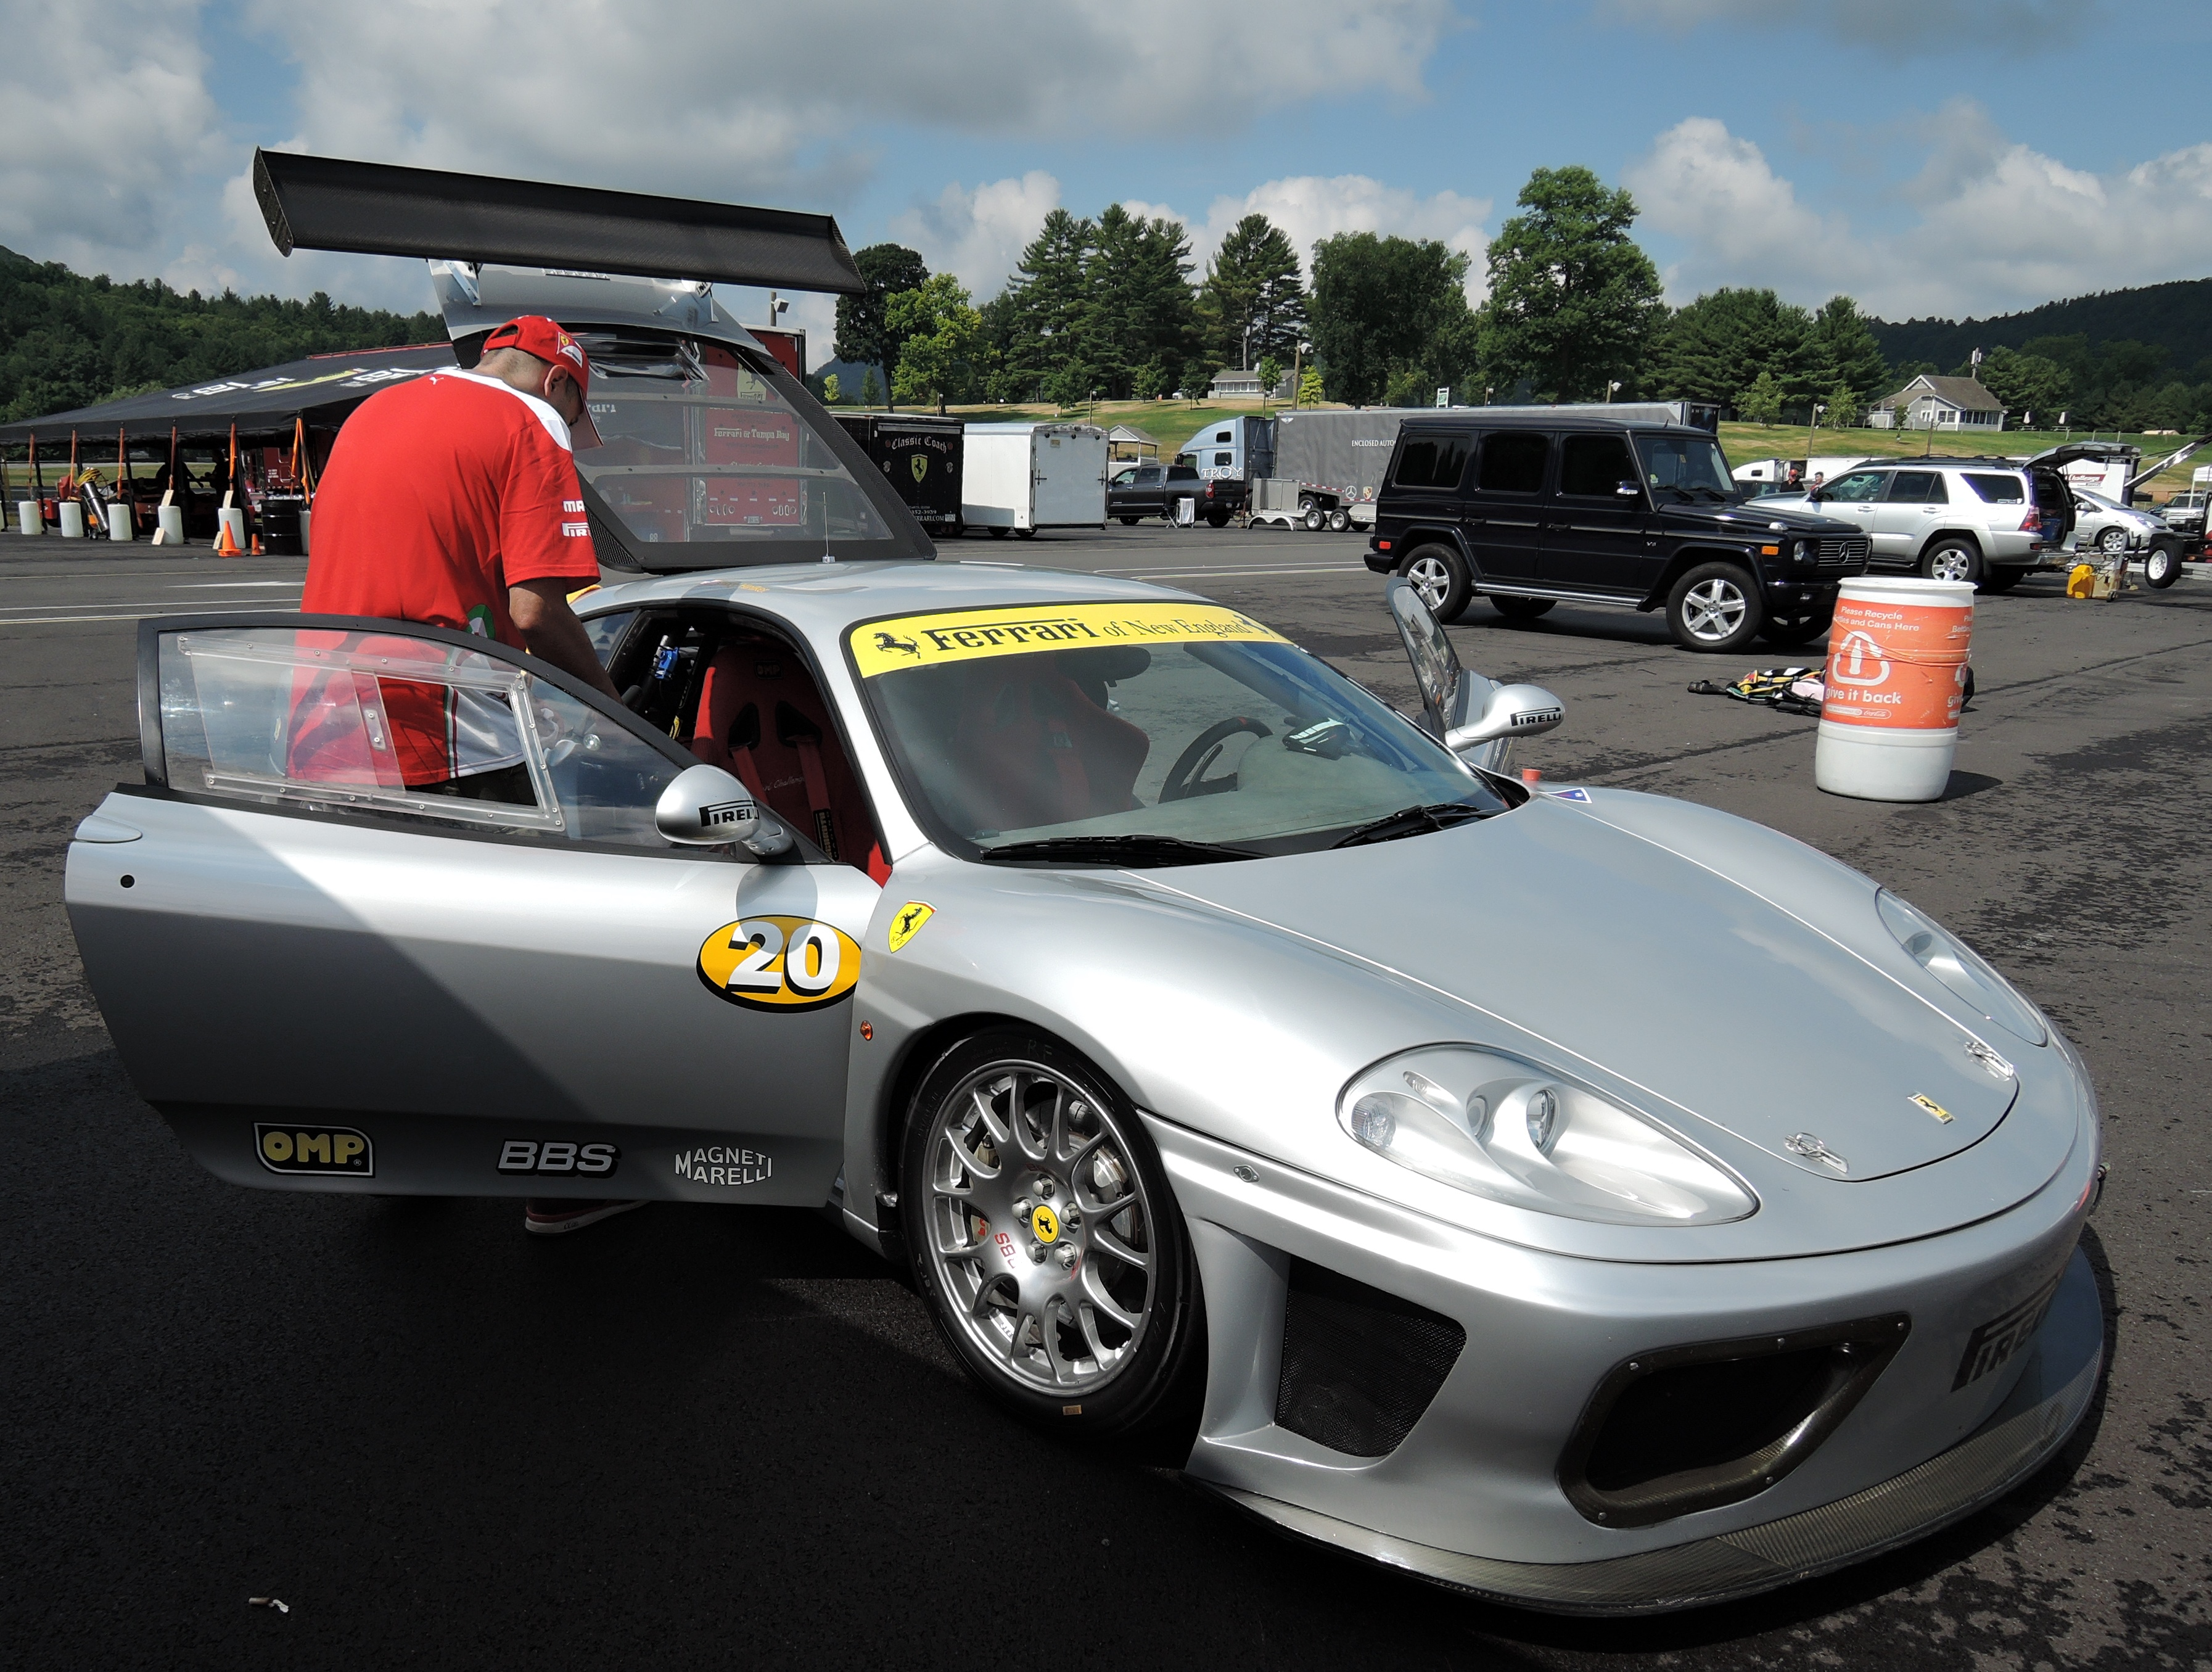 silver ferrari 360 challenge car - ferraris at lime rock park